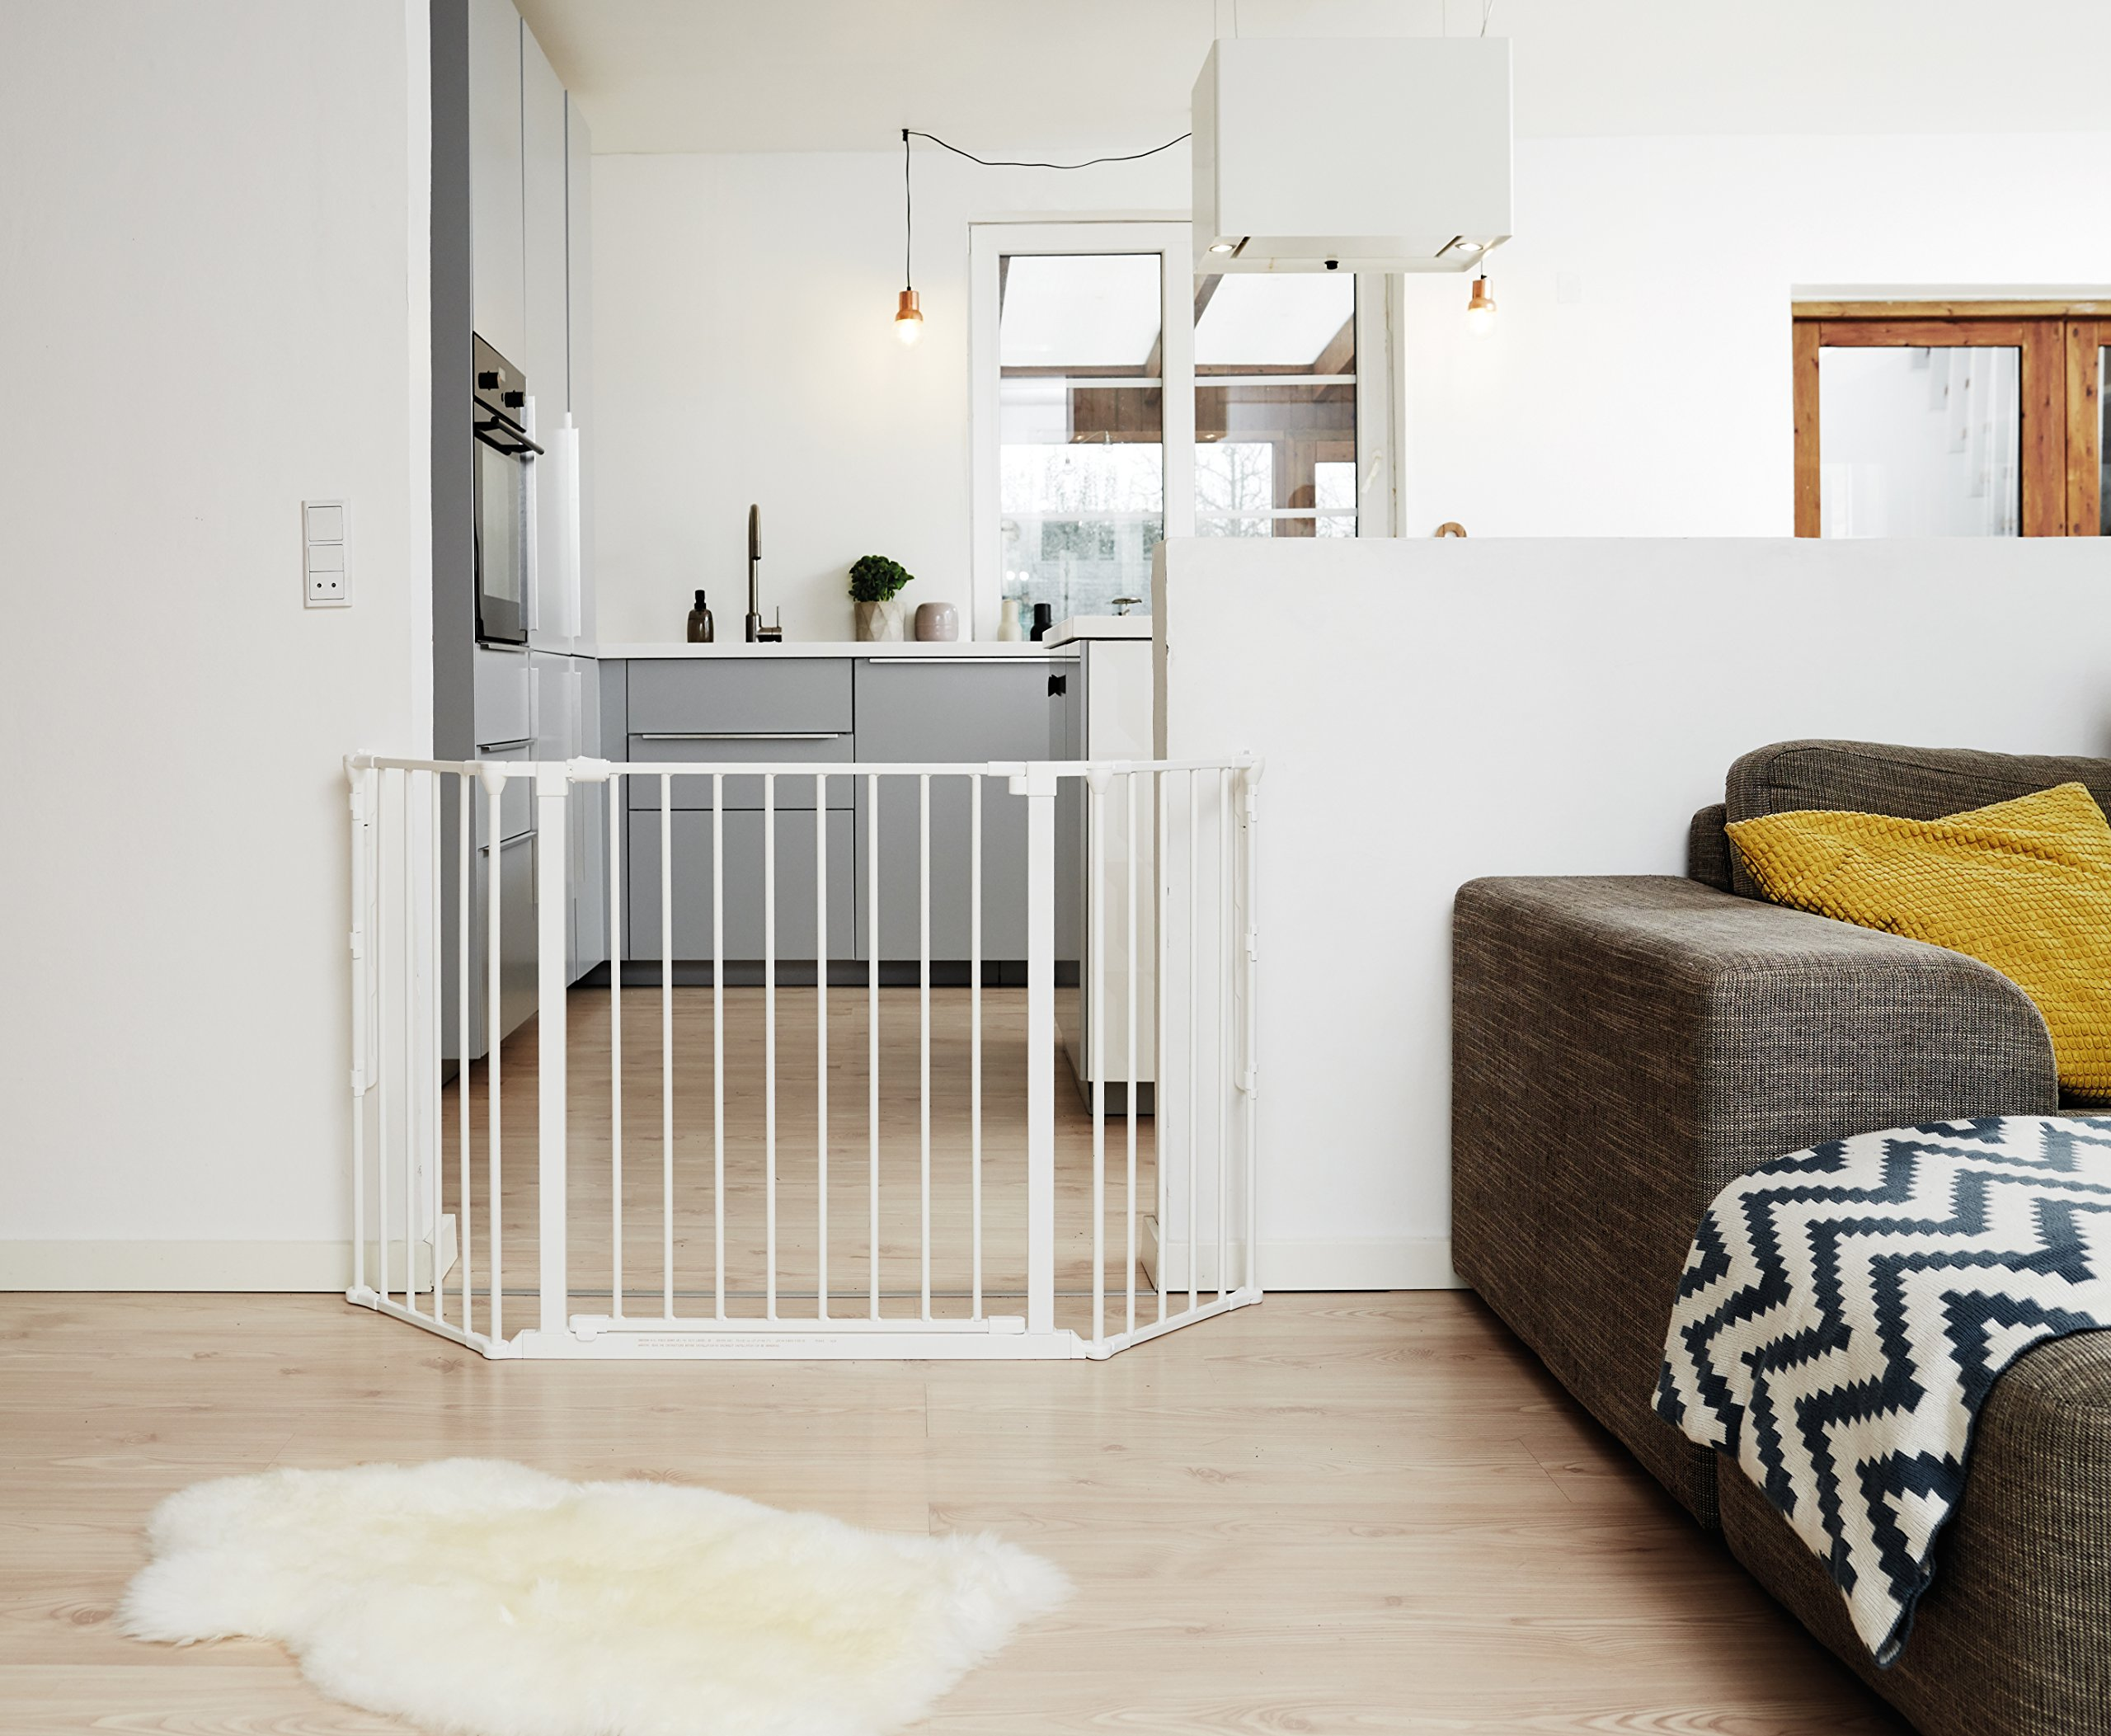 BabyDan Configure (Medium 90-146cm, White)  Only configure system fulfilling newest European safety standard Multi purpose room divider and gate for wider openings Flexible and easy to fit 3